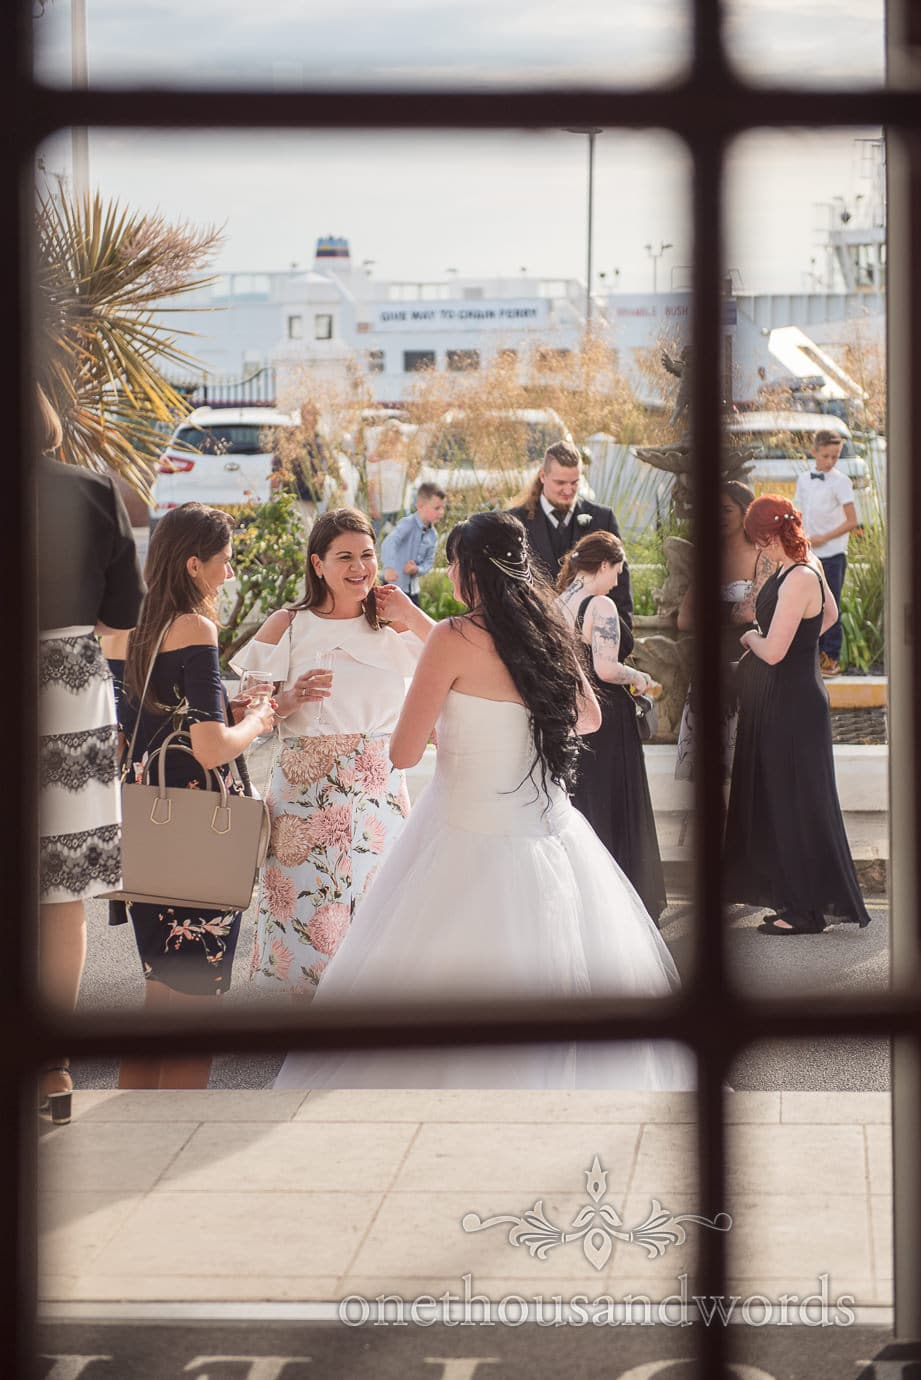 Wedding guests enjoy sunshine outside Haven Hotel with ferry in background